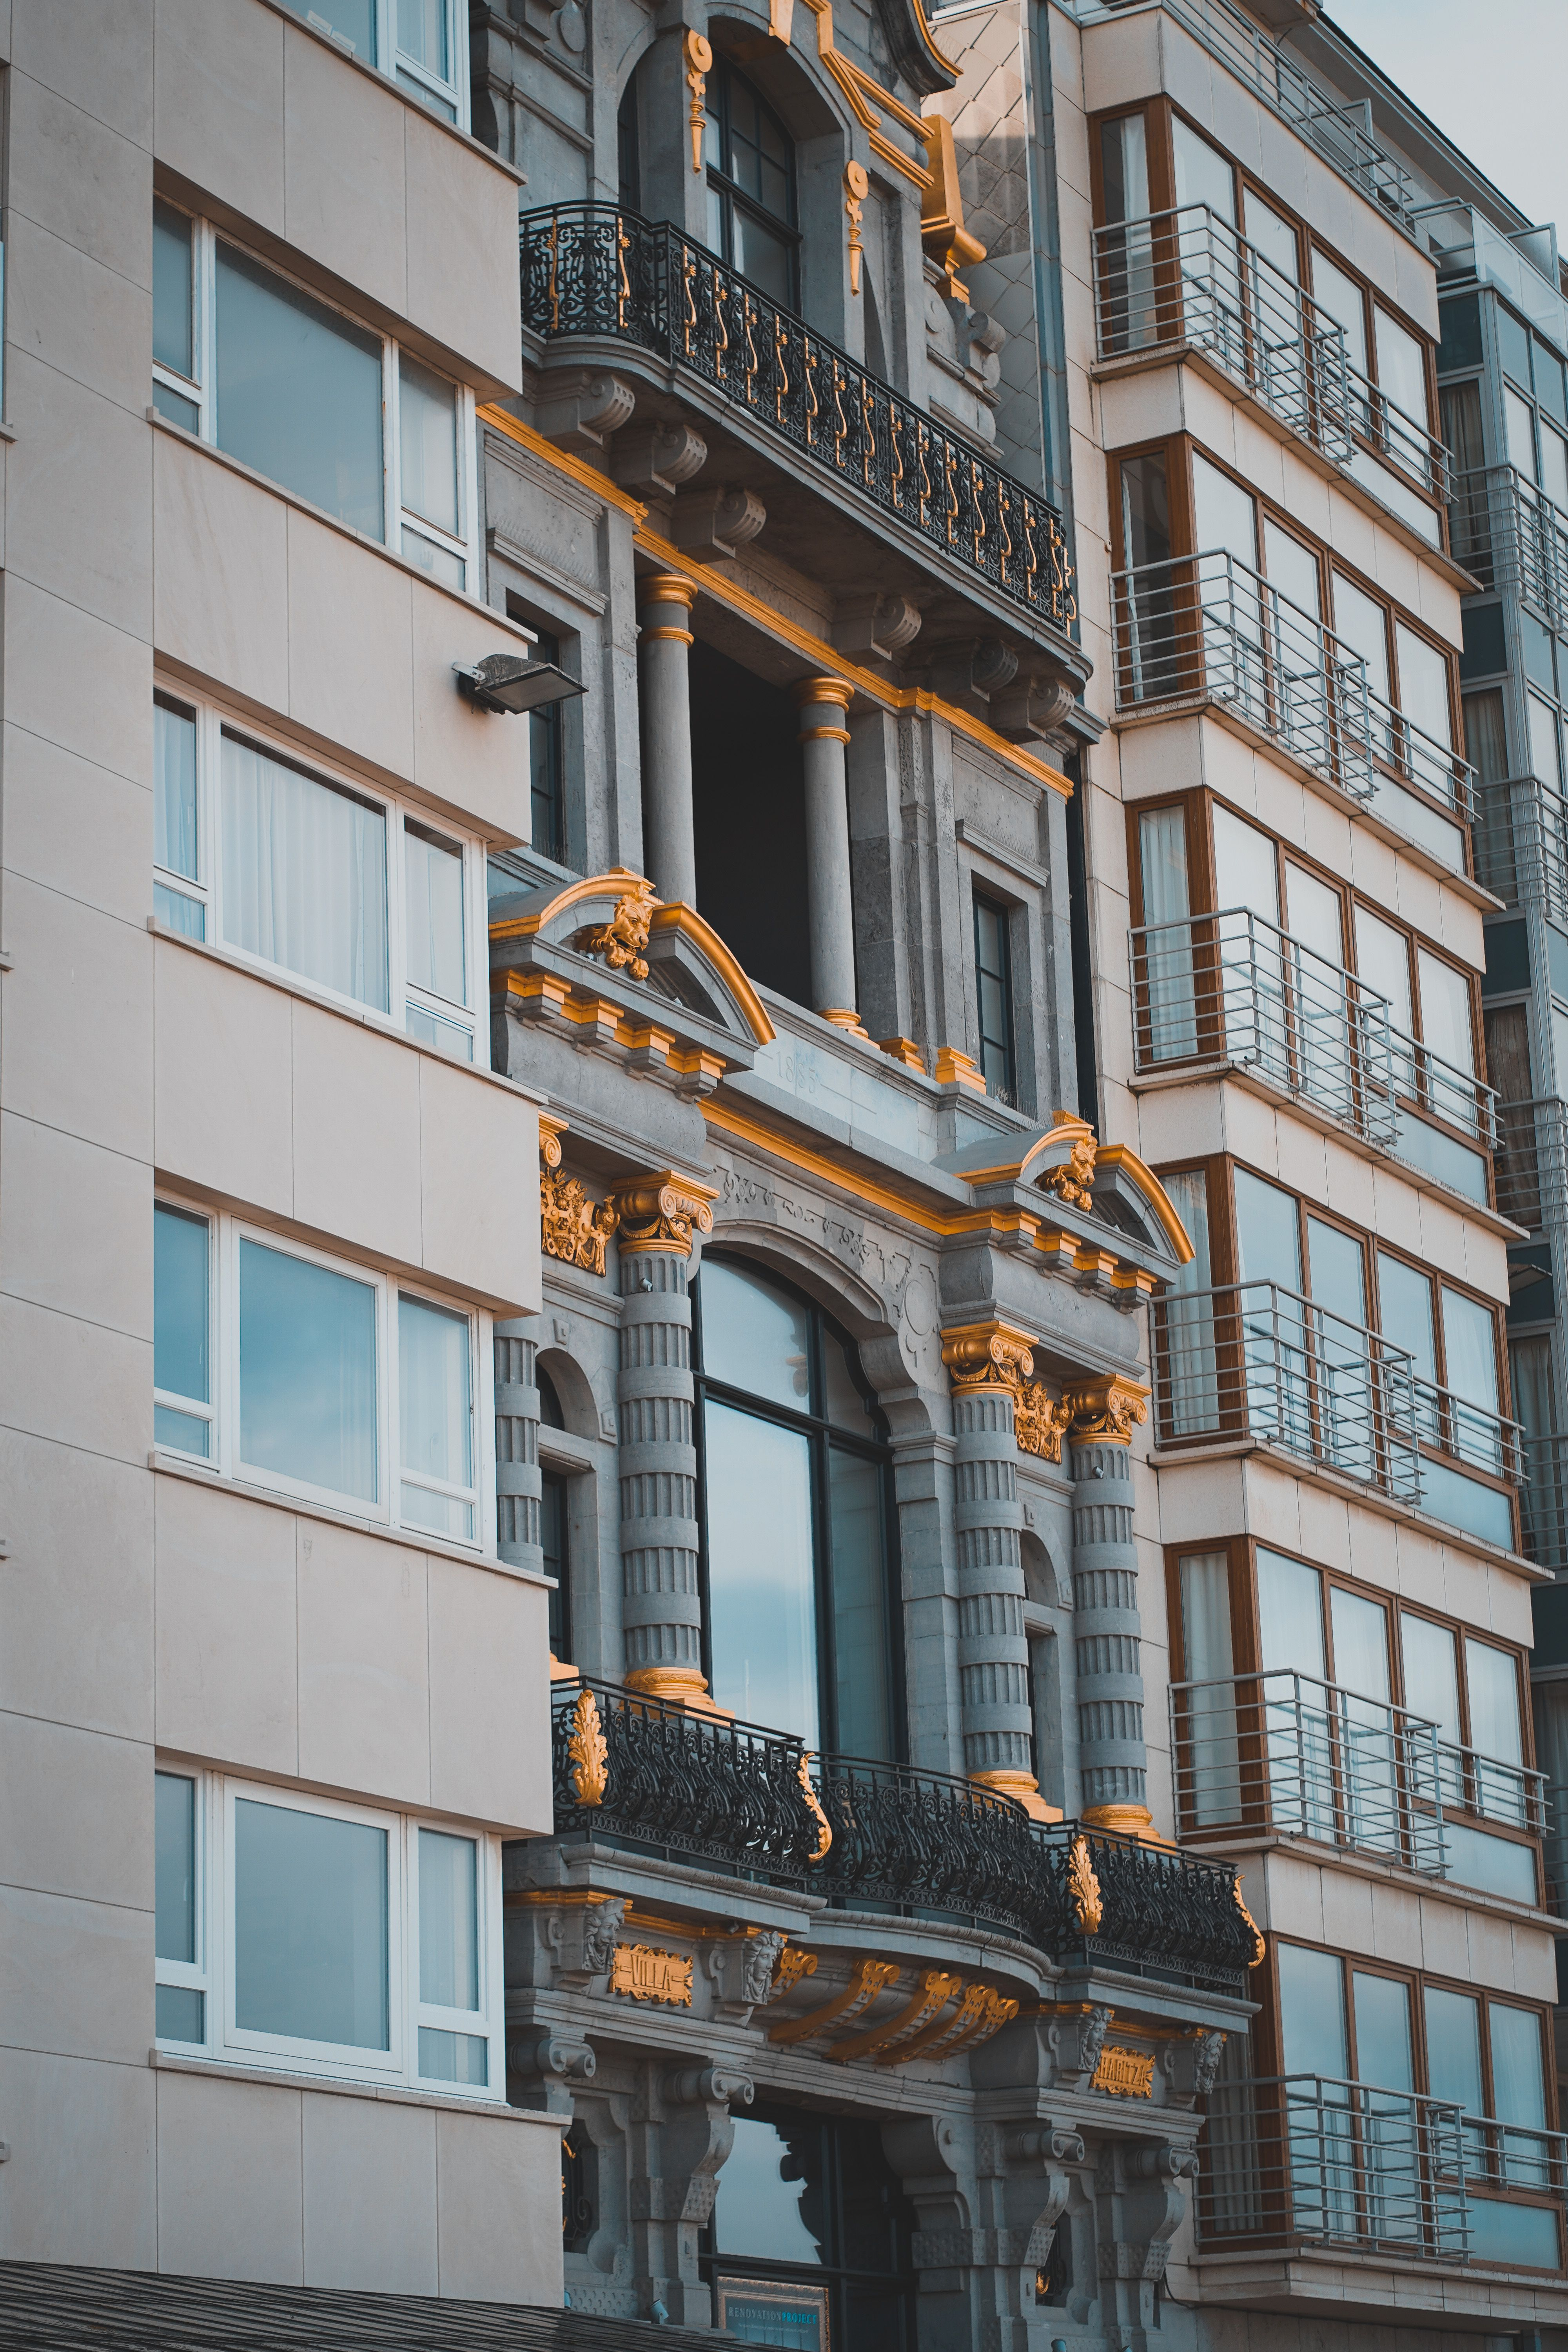 Photo of 4 Alarming High Heels Appearance Shallow Focus Photo Of Gray Building #building …